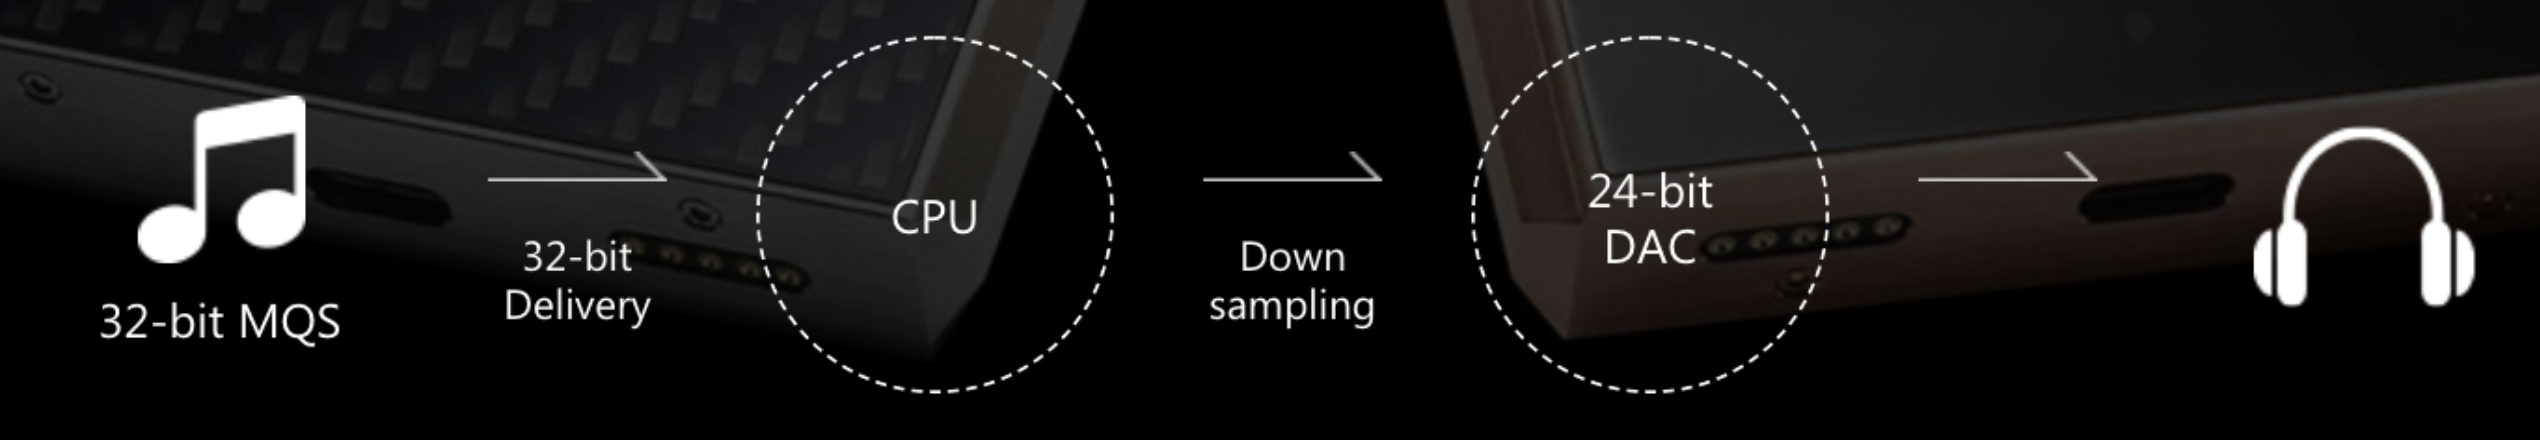 normal 32-bit playback downsampling